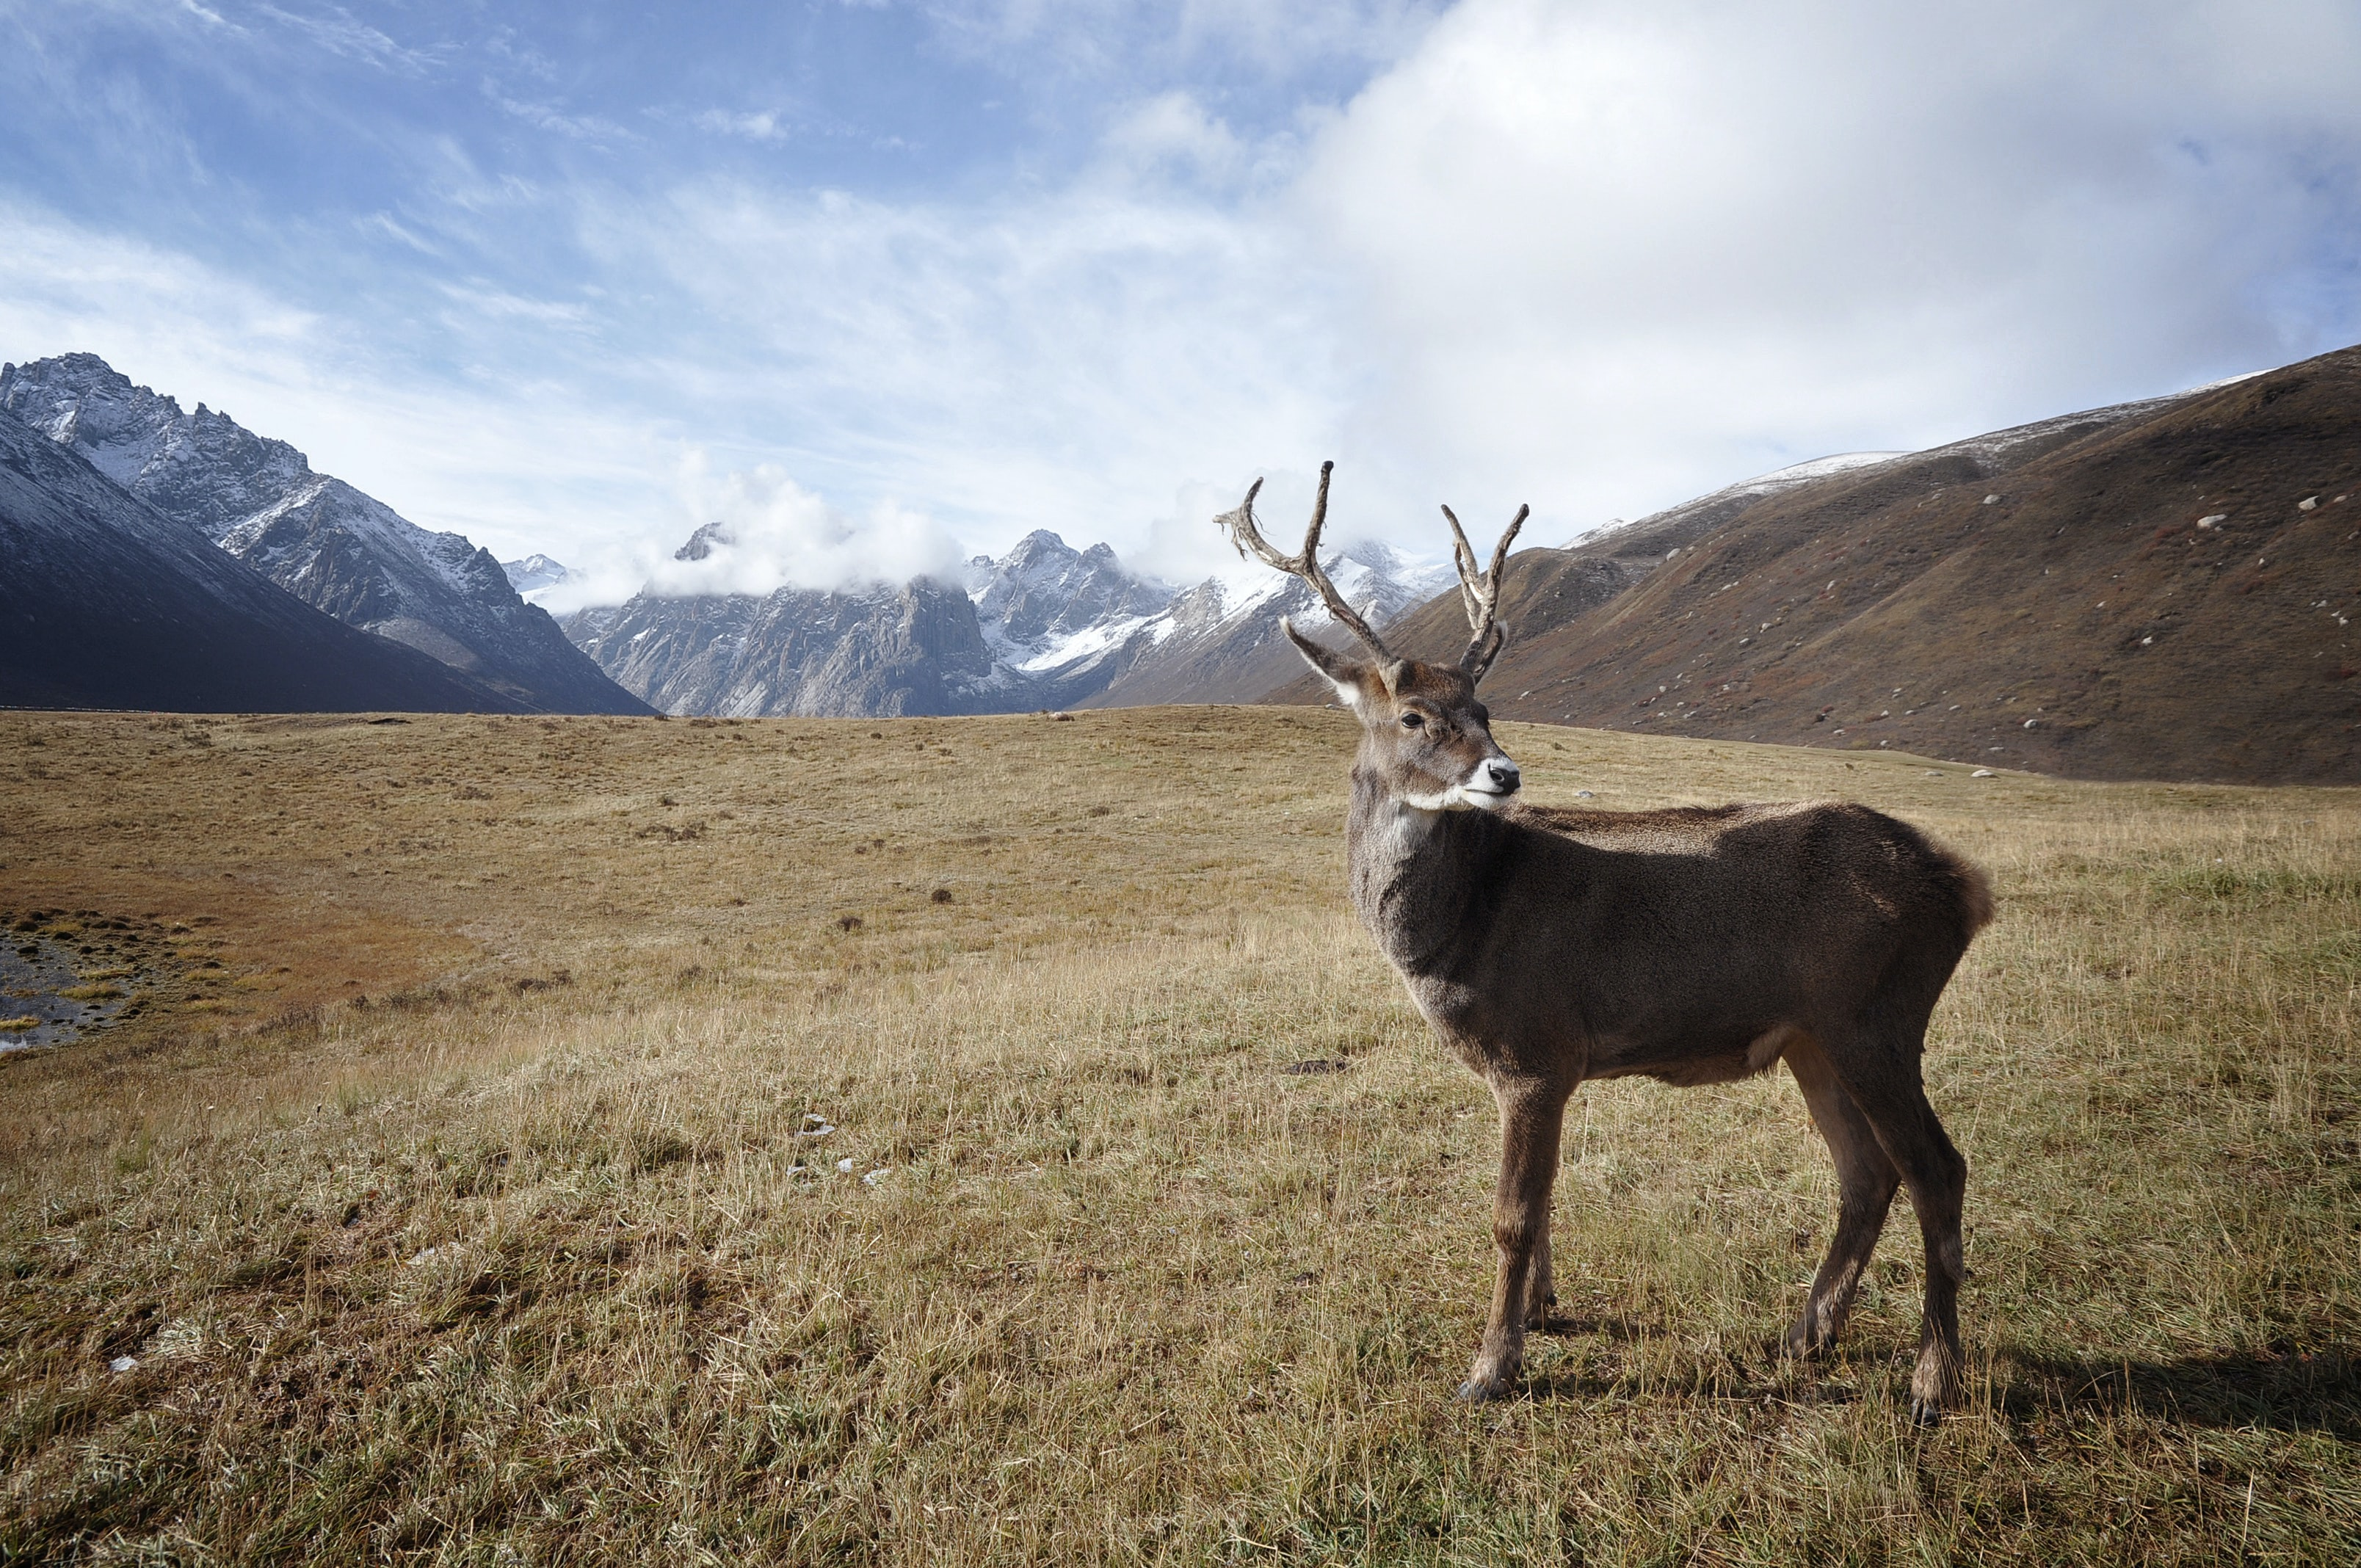 A caribou standing in a grassy plain in the mountains